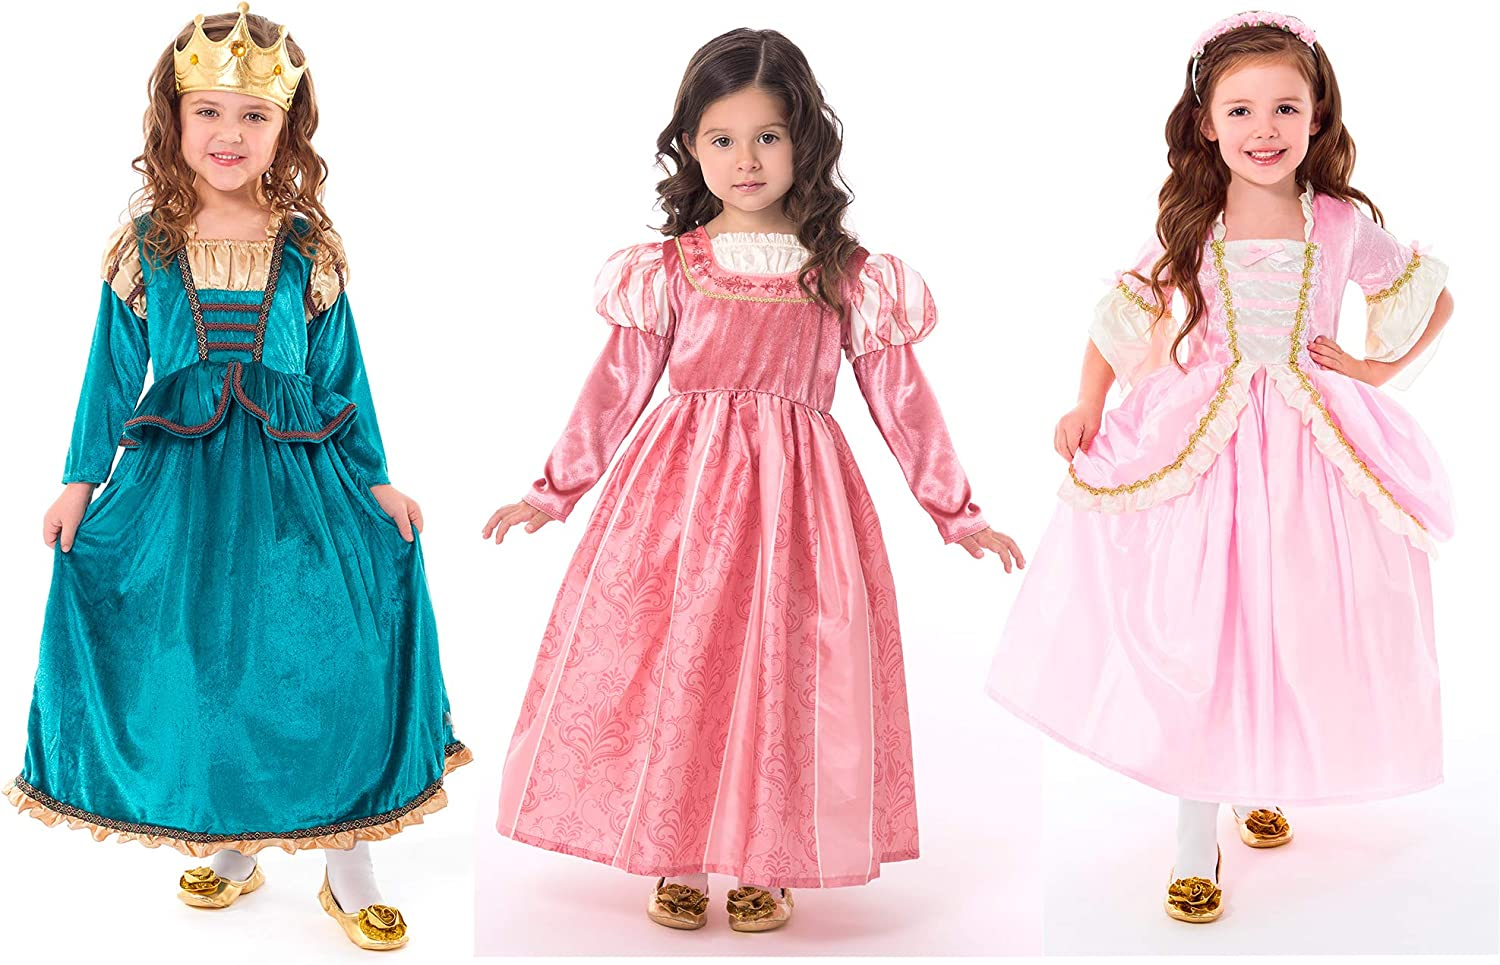 Small Age 1-3 Little Adventures Cinderella Day Dress Princess Dress Up Costume for Girls